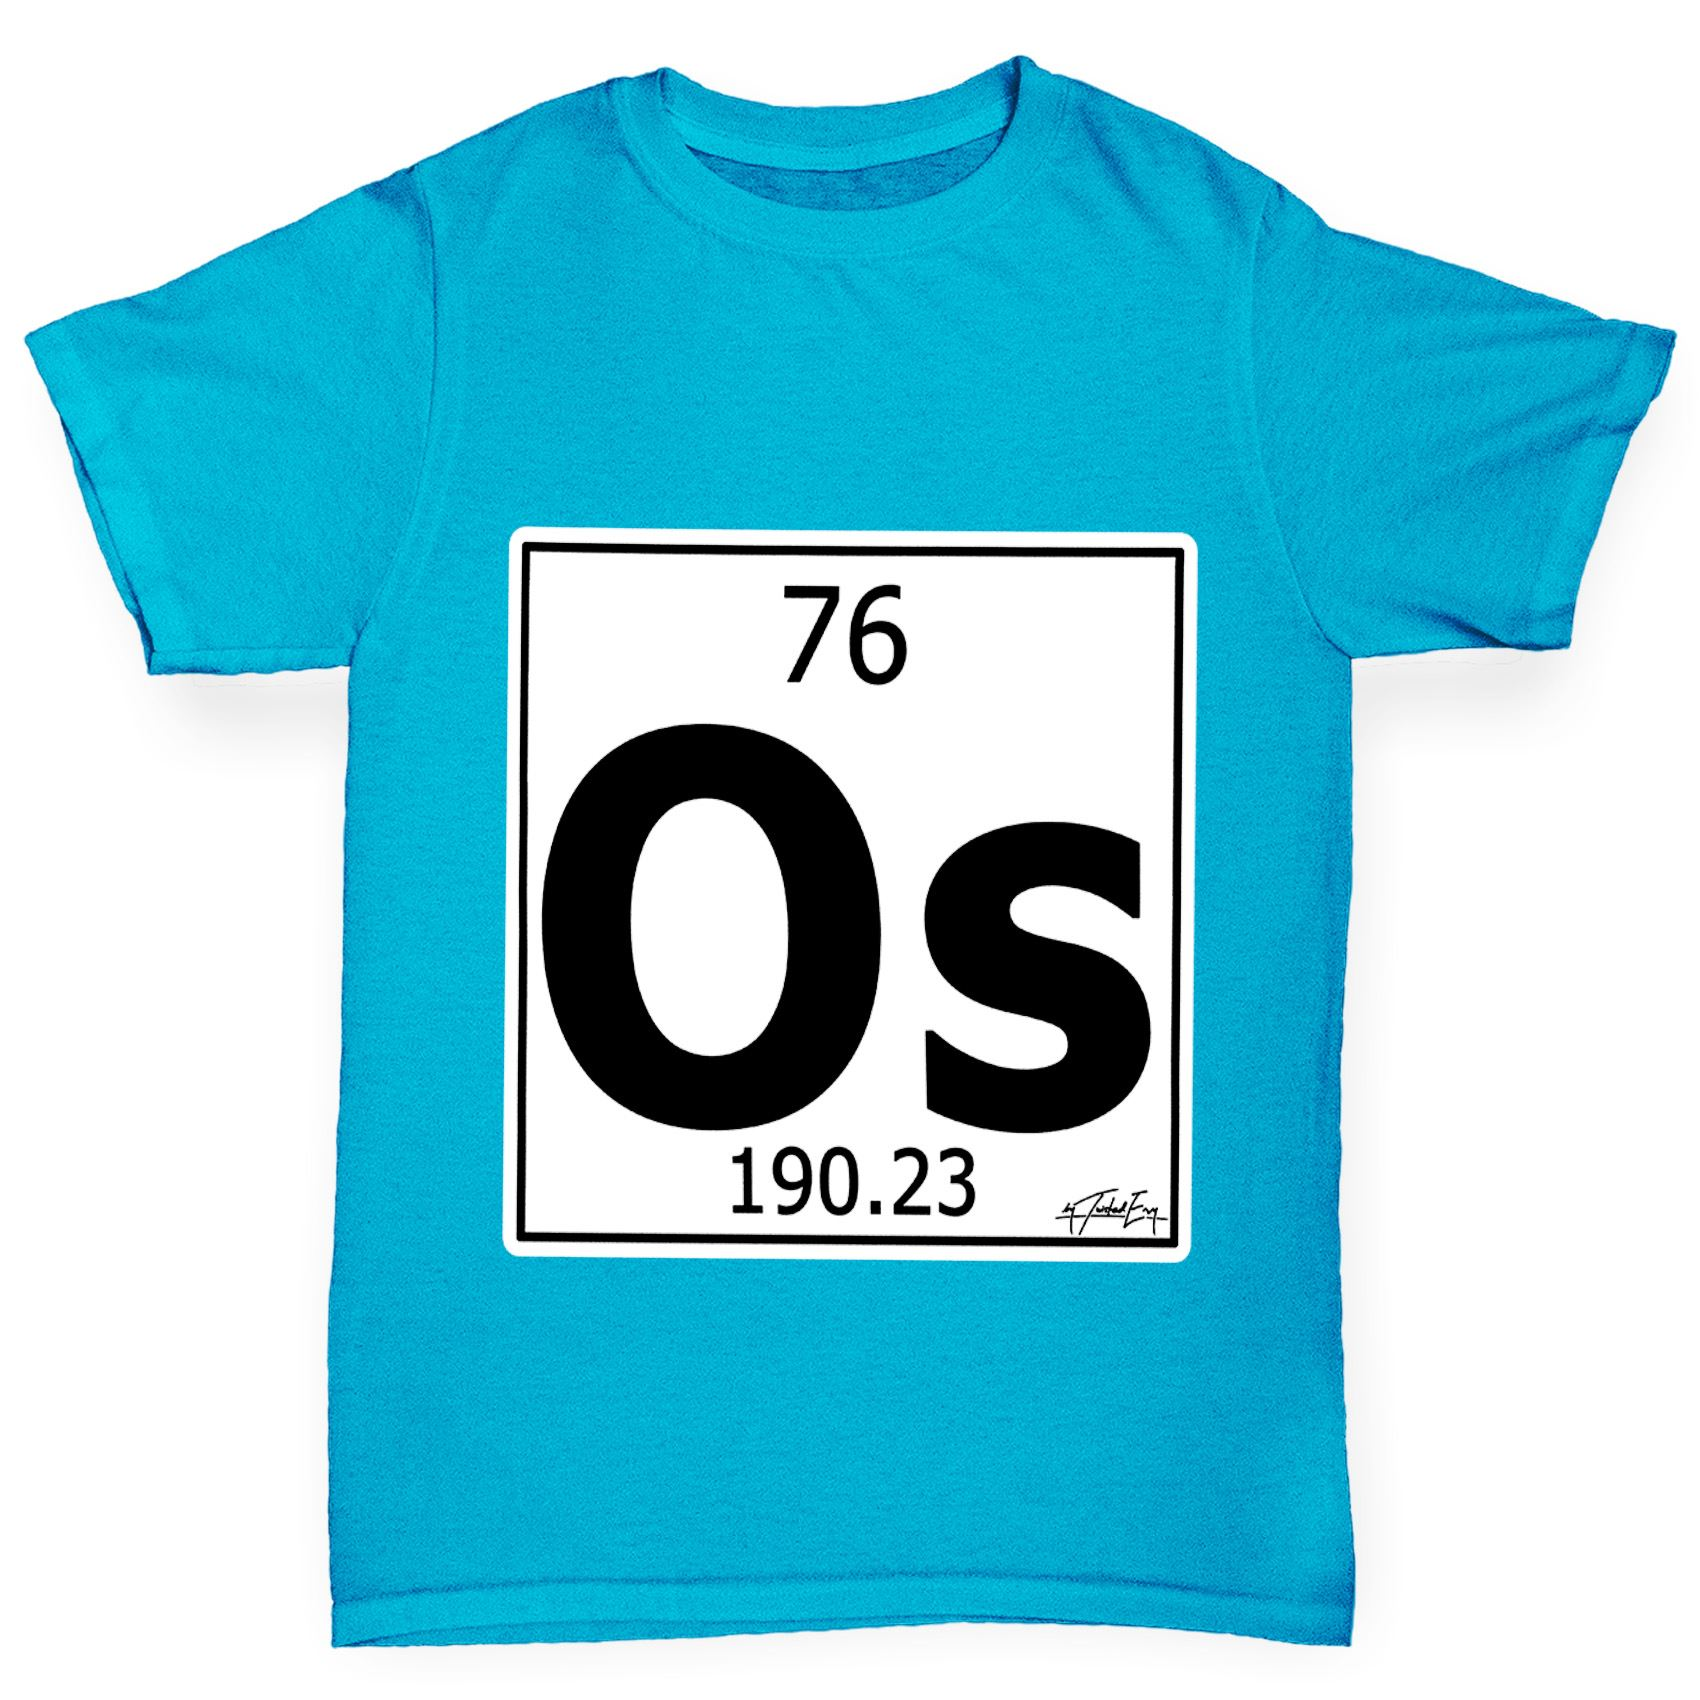 Twisted envy boys periodic table element os osmium t shirt ebay twisted envy boy 039 s periodic table element gamestrikefo Choice Image